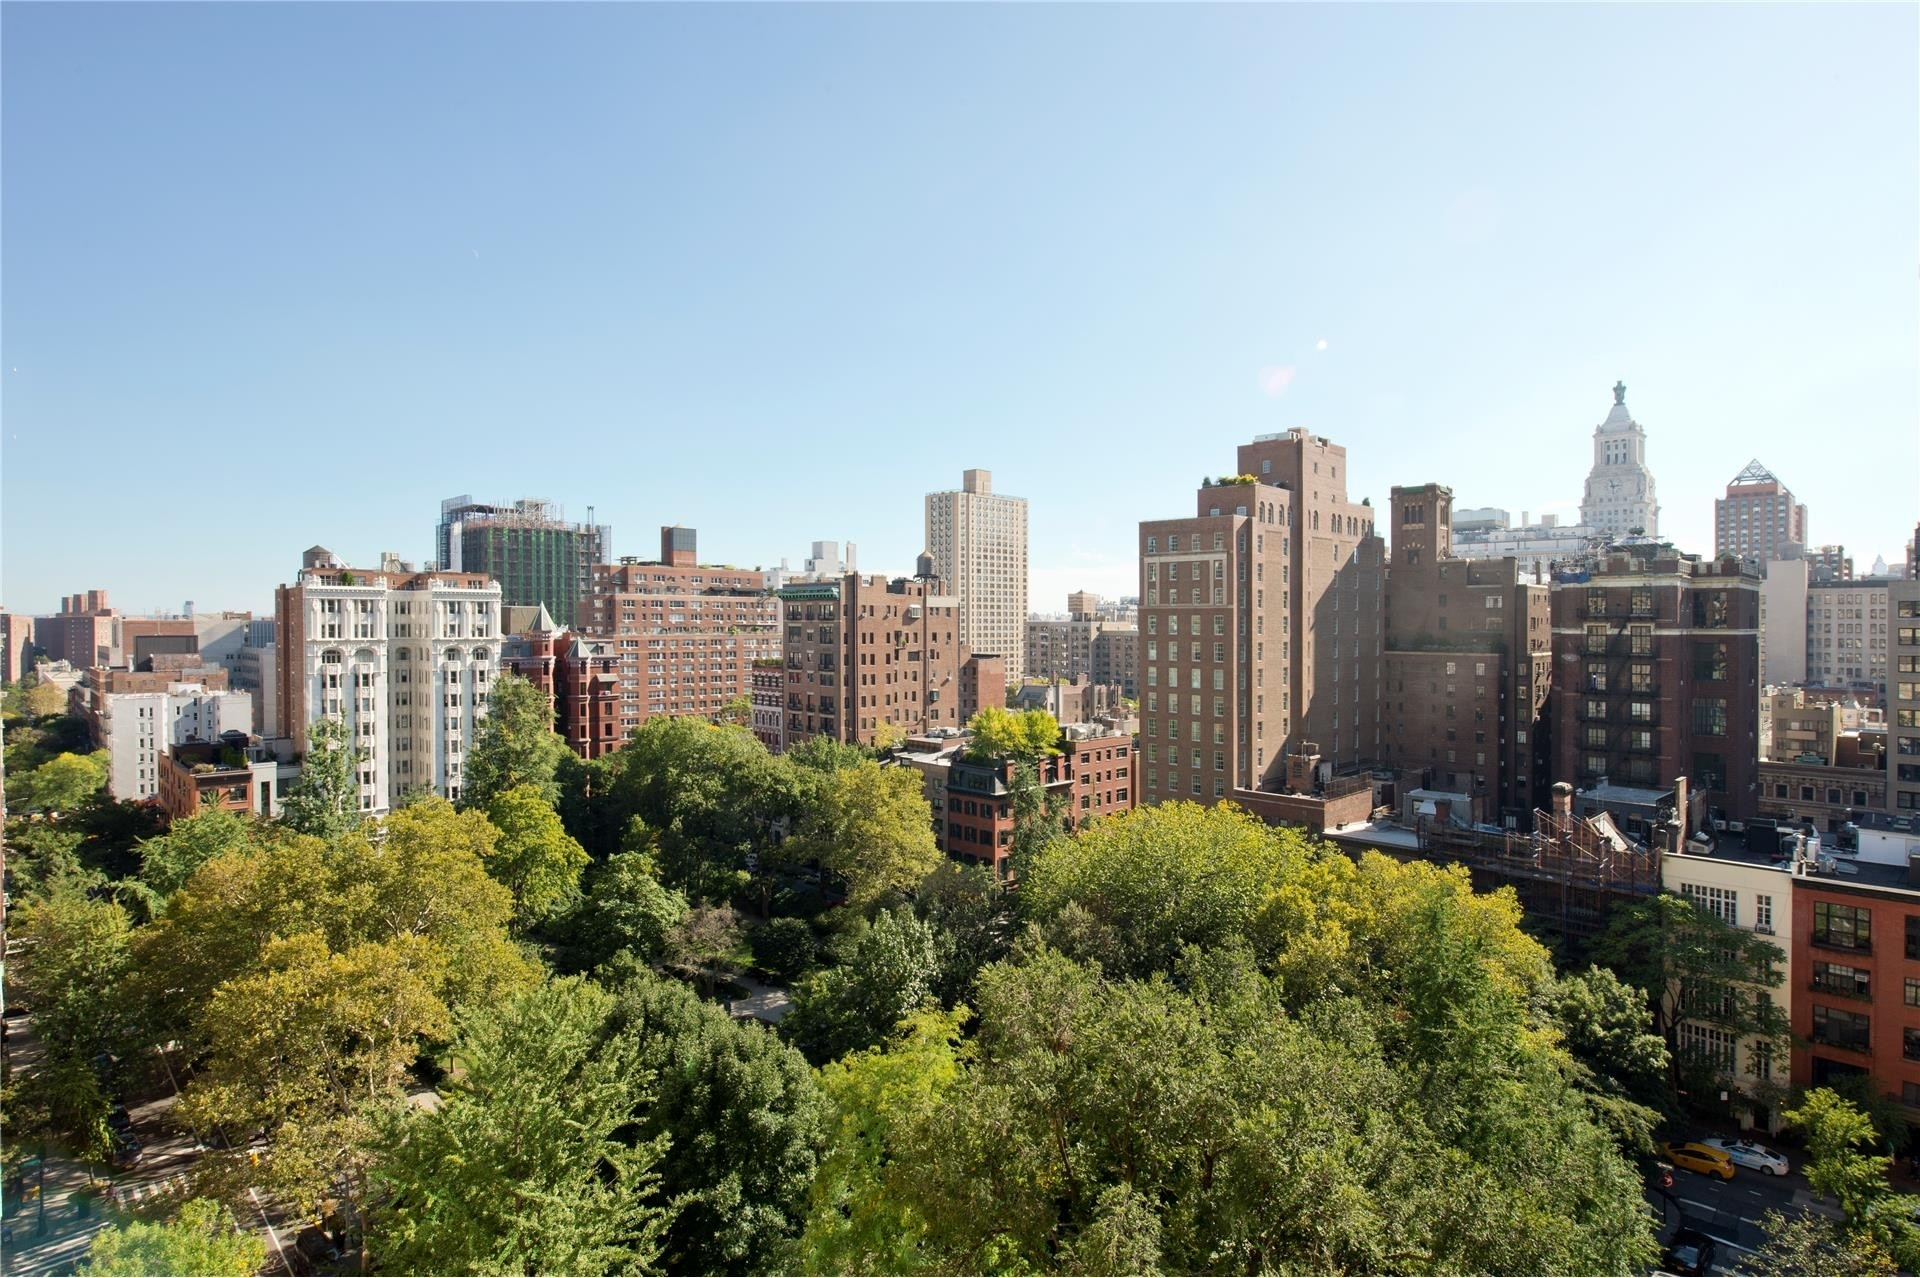 3. Gramercy Park Resid. Corp. здание в 60 Gramercy Park North, Gramercy Park, New York, NY